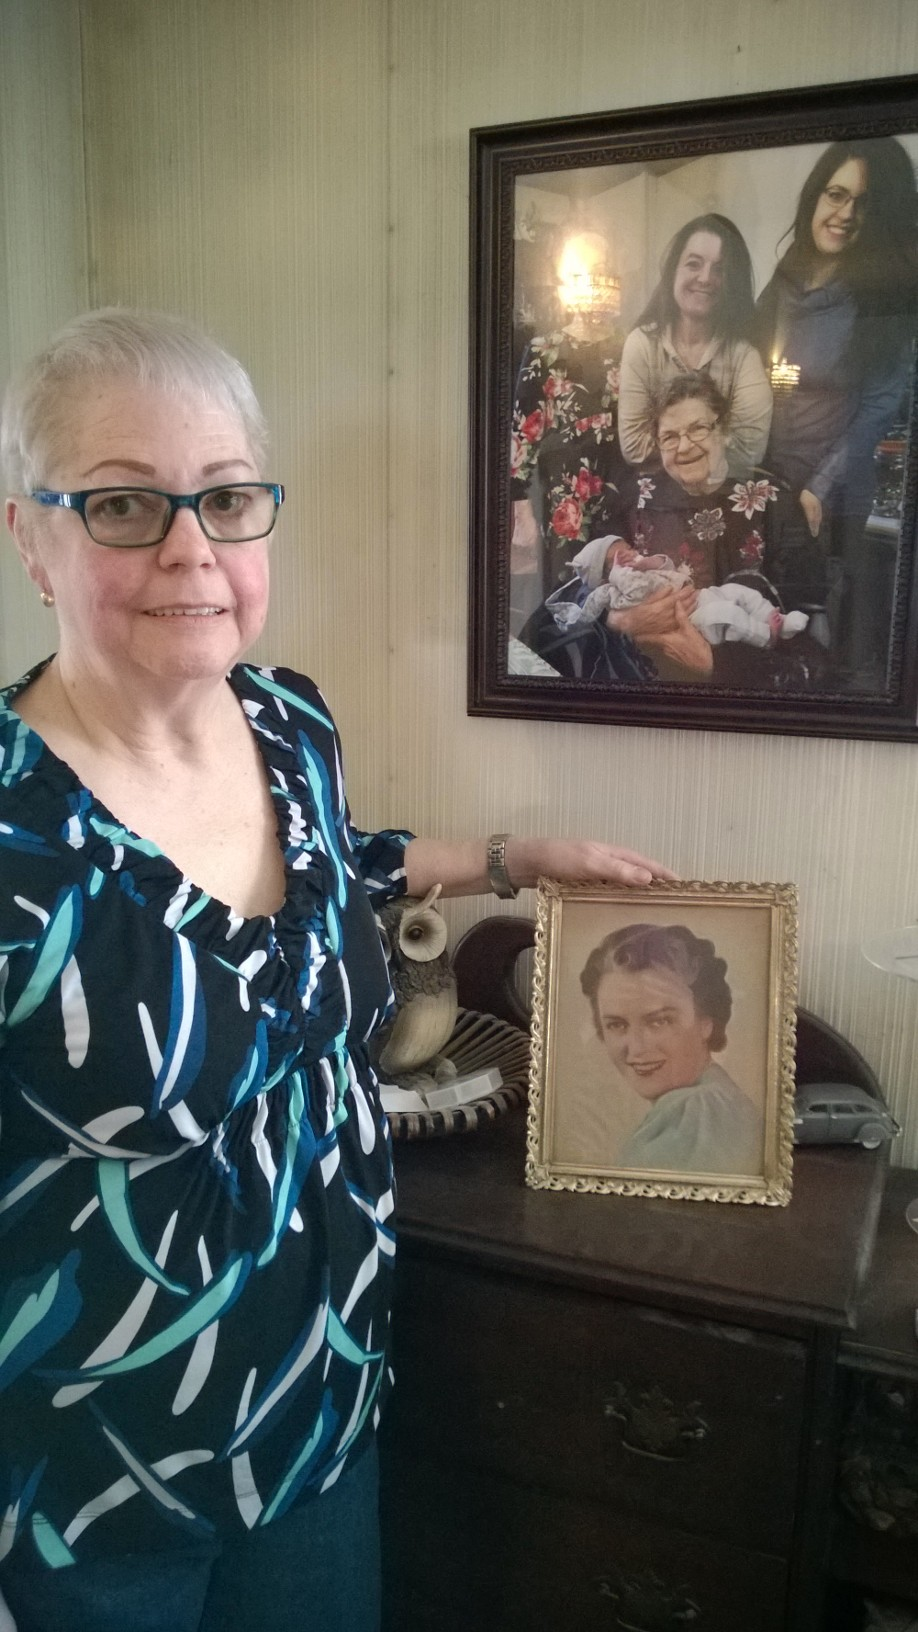 Daughter, Peggelee Kendro, with her mother's favorite family photo of five generations on the wall and her mother's mother who abandoned Pegge in a hotel room at age 4 before she was found a week later.